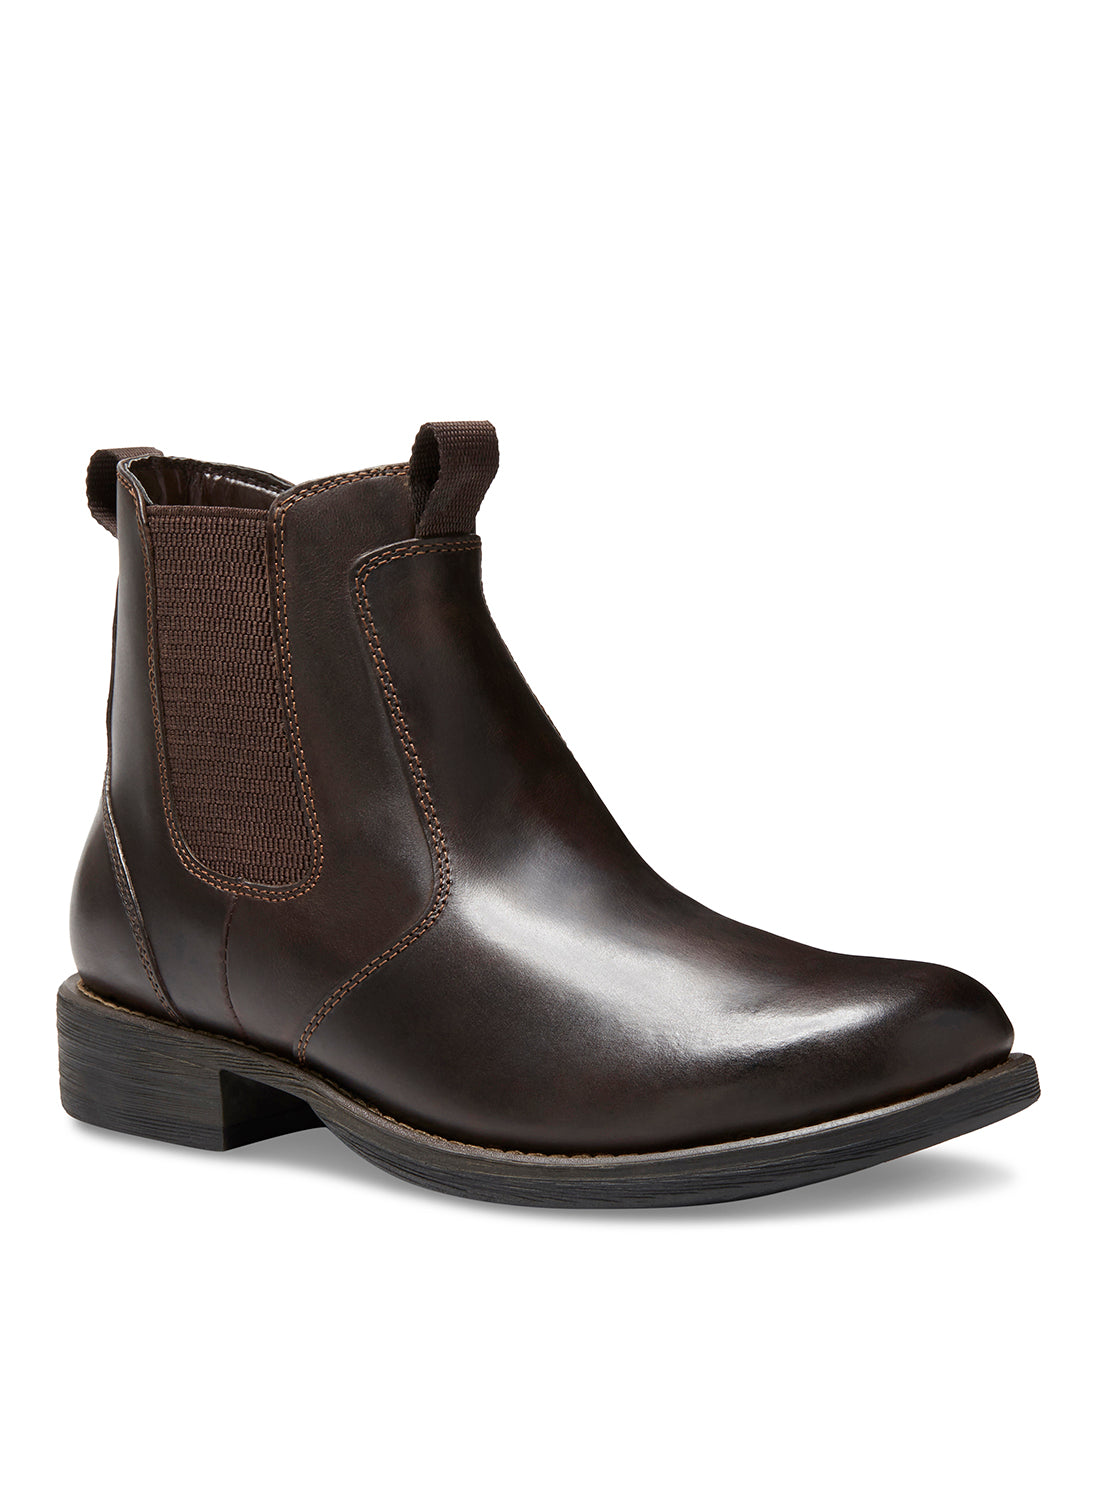 'Eastland' 7175-56 - Daily Double Ankle Boot – Dk. Brown